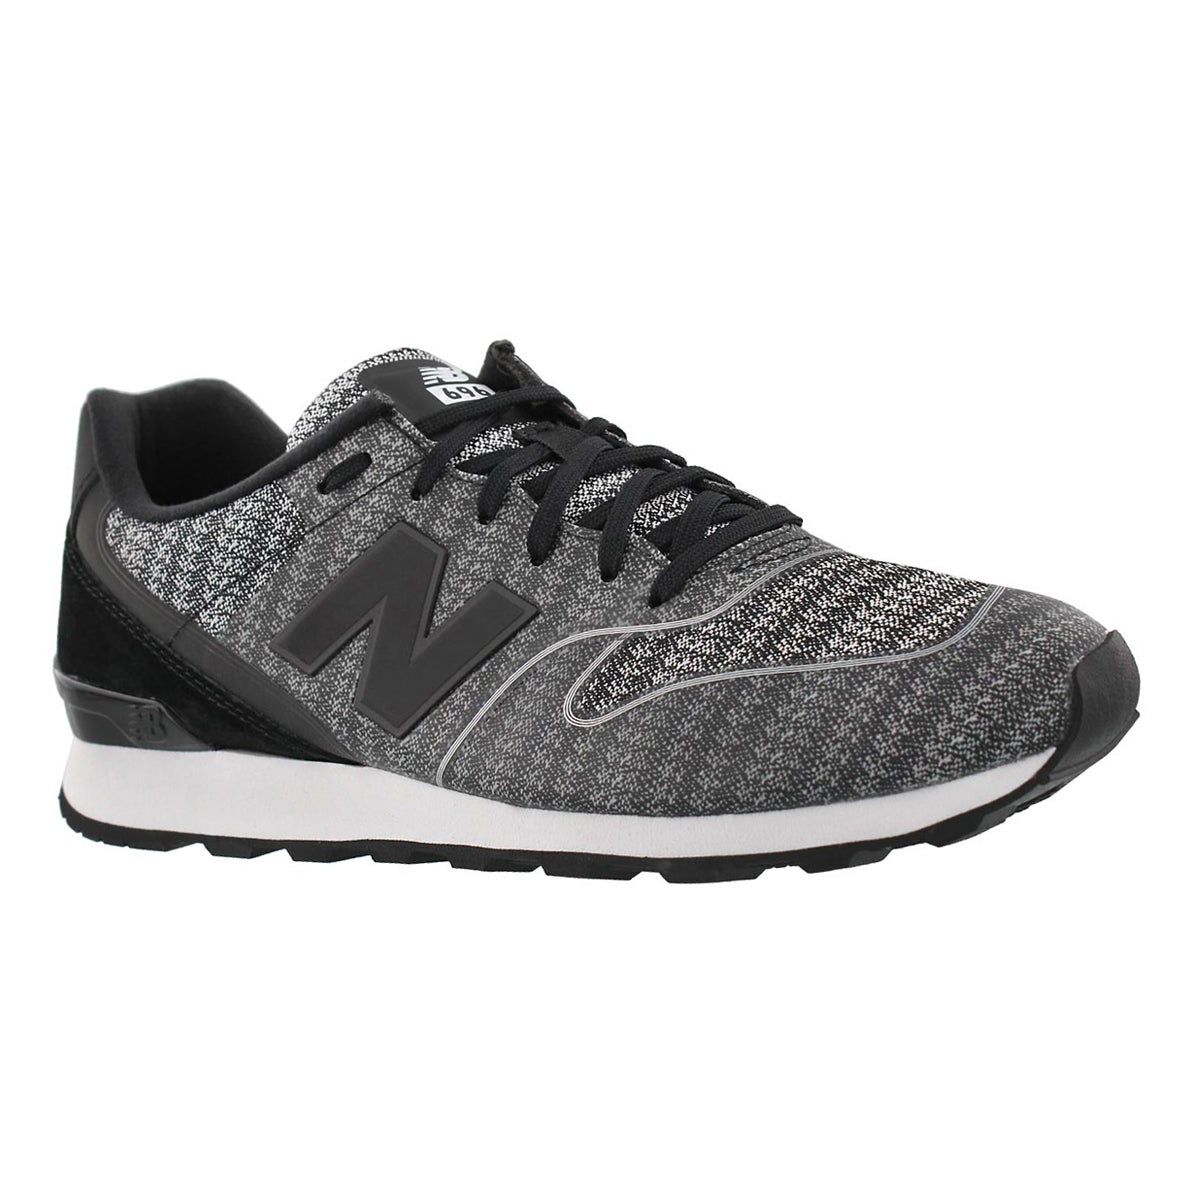 Women's 696 black/cyclone lace up sneakers